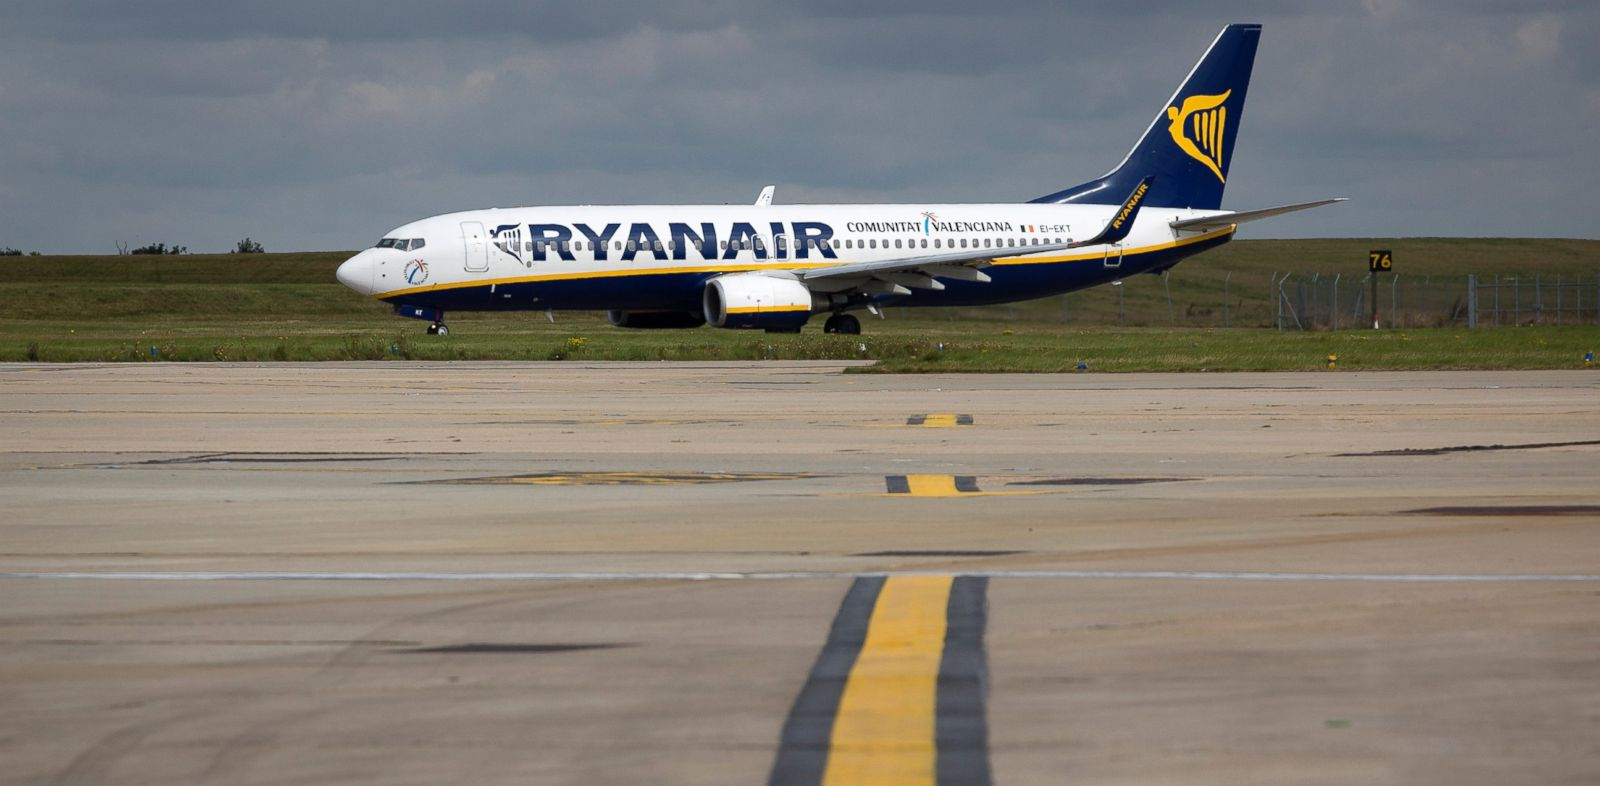 PHOTO: In this file photo, a Ryanair aircraft is pictured in Stansted, U.K. on Sept. 10, 2013.